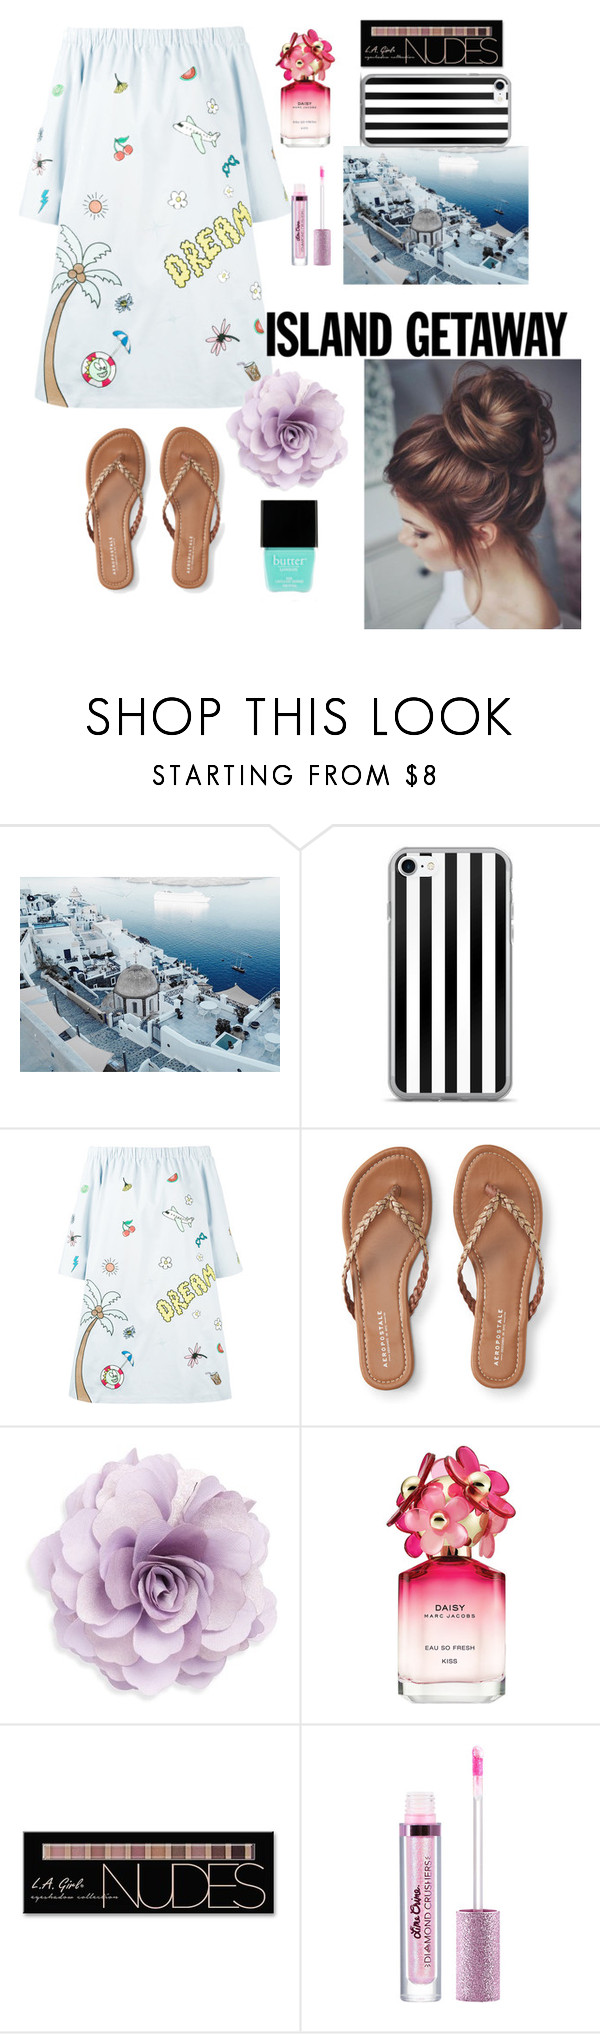 """Untitled #72"" by silviamachado20 ❤ liked on Polyvore featuring Mira Mikati, Aéropostale, Cara, Marc Jacobs, Charlotte Russe and Butter London"